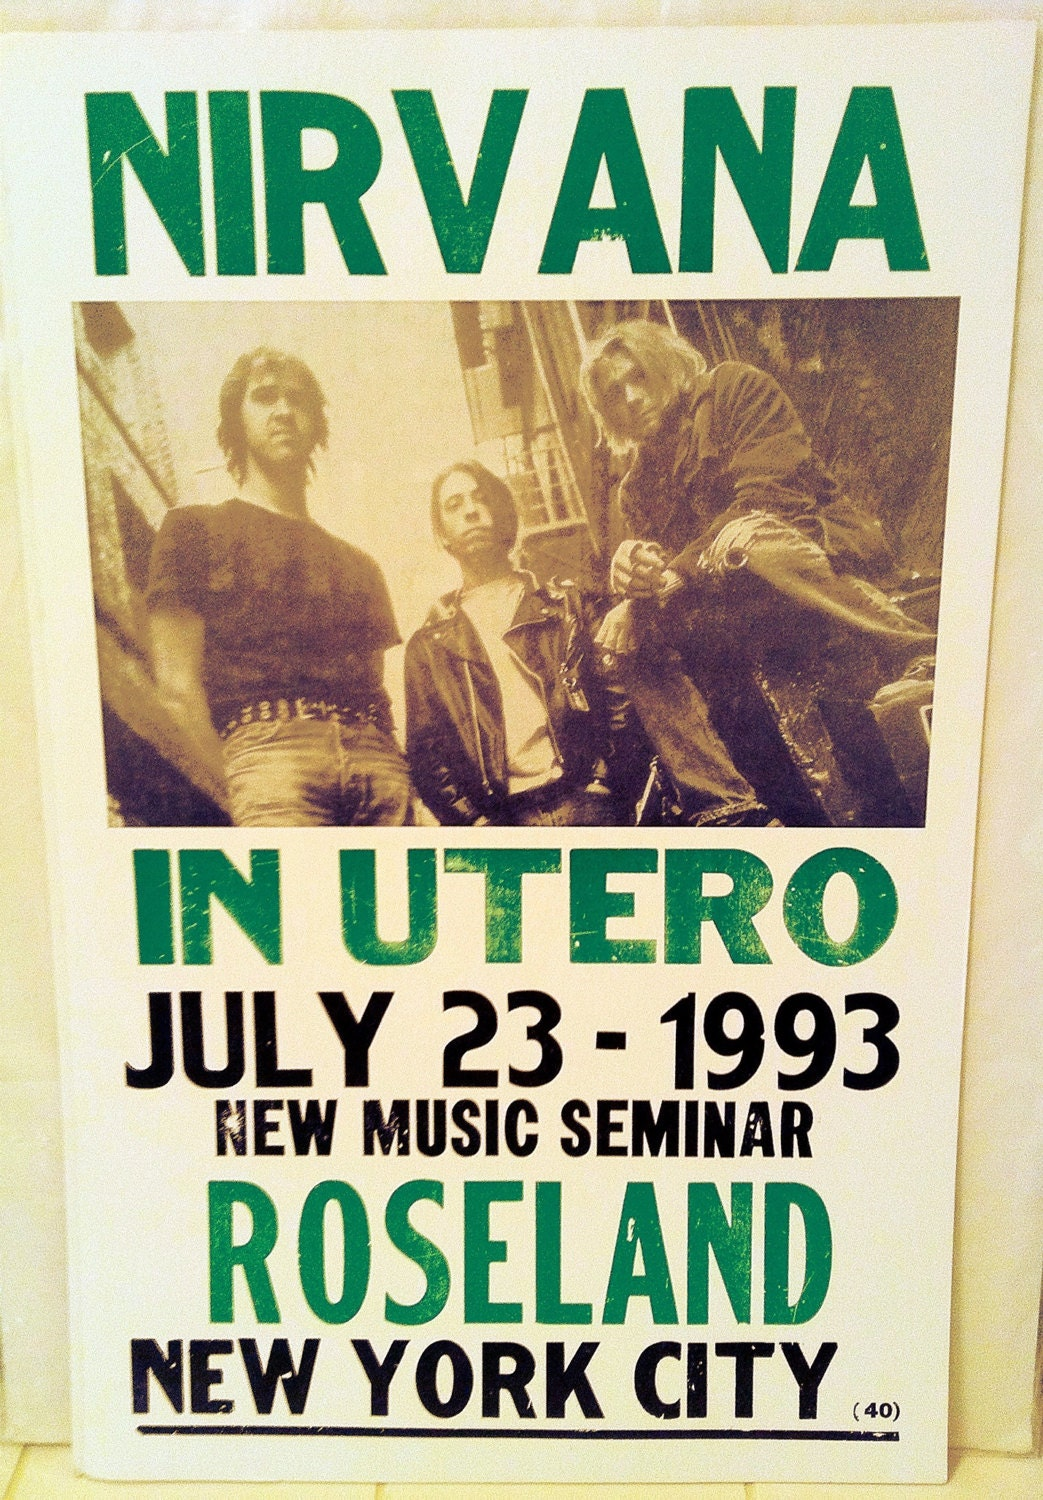 Mint Condition Nirvana Concert Poster On Greaseless Cardboard Surface